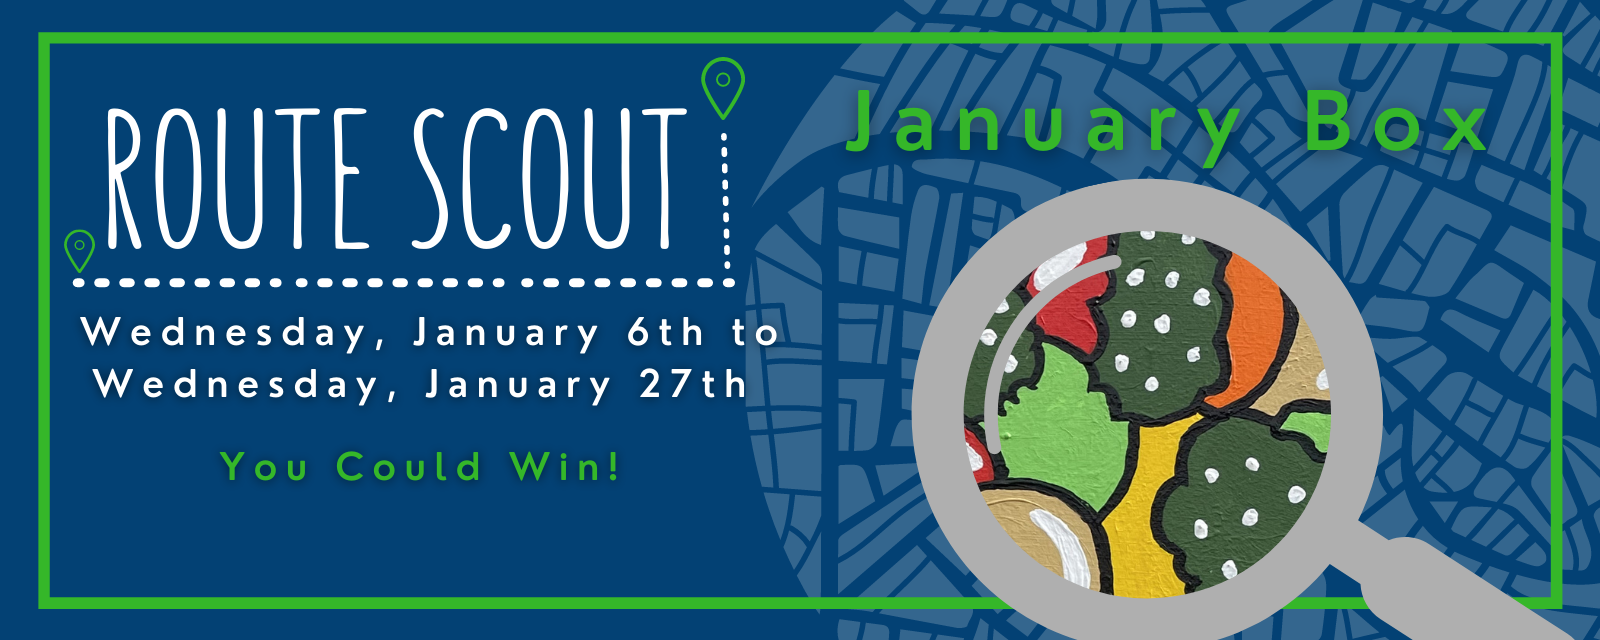 Route Scout January